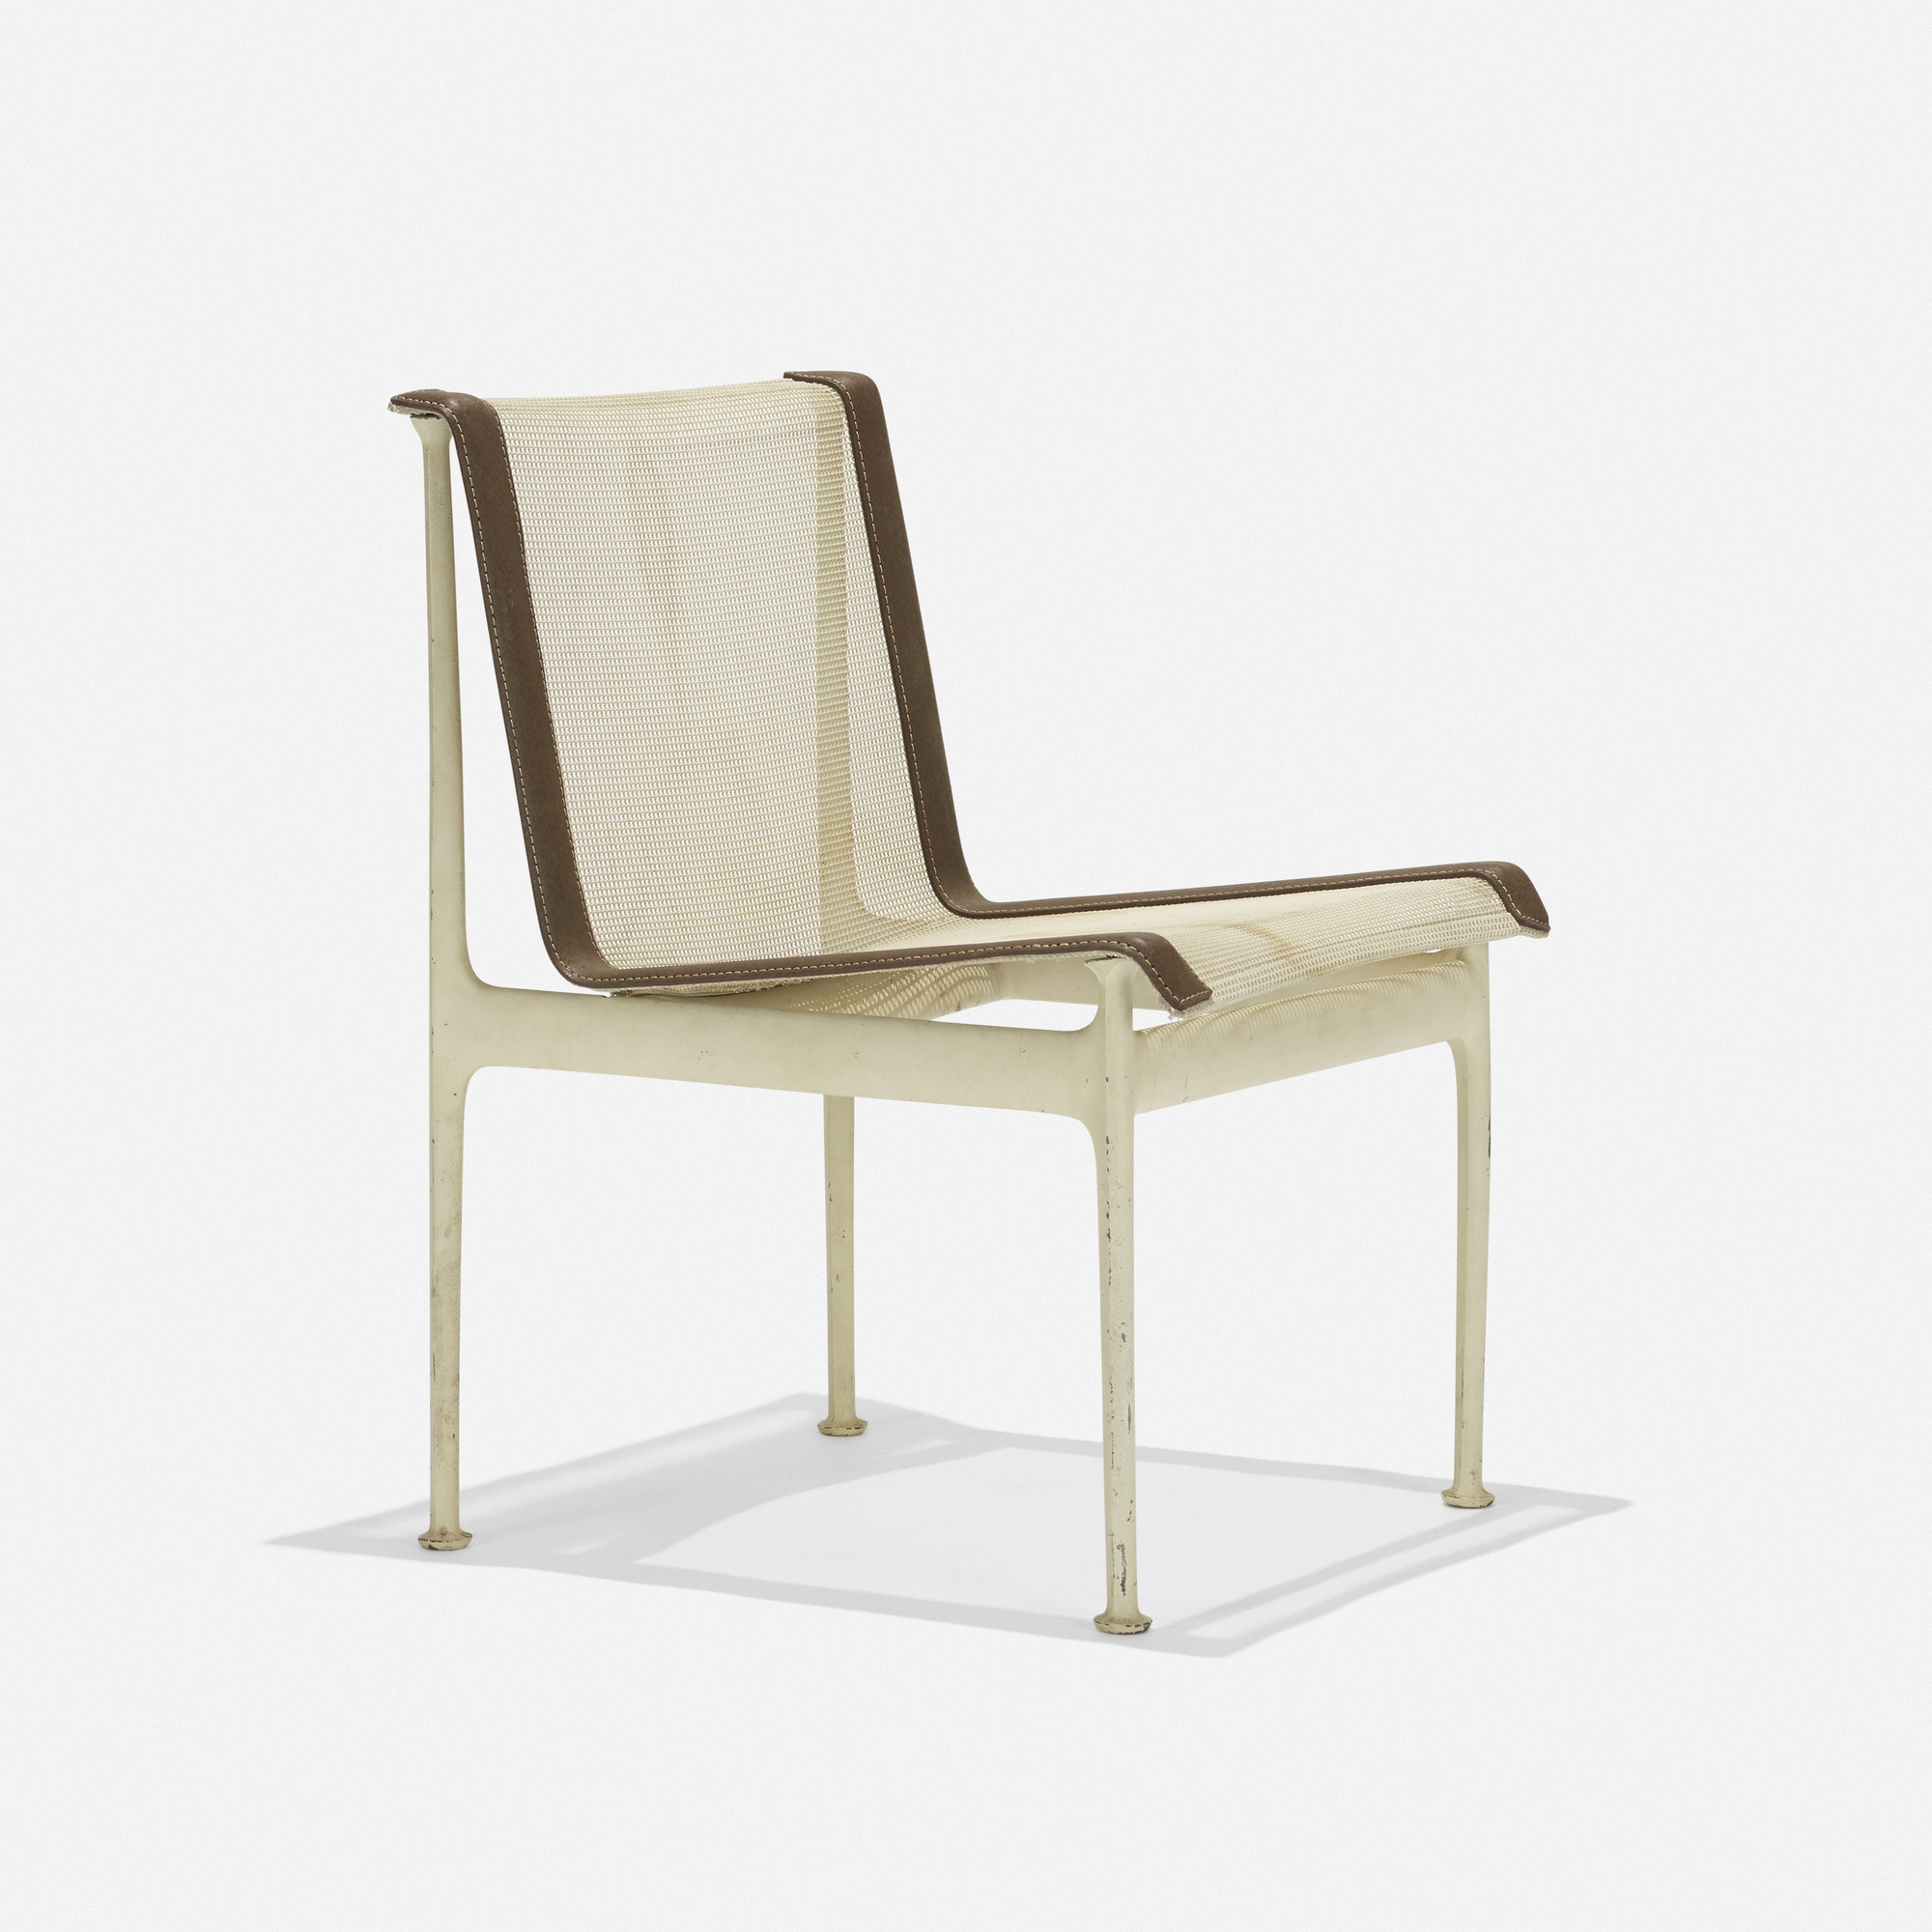 richard schultz  early production leisure collection dining  -  richard schultz  early production leisure collection dining chair (of )